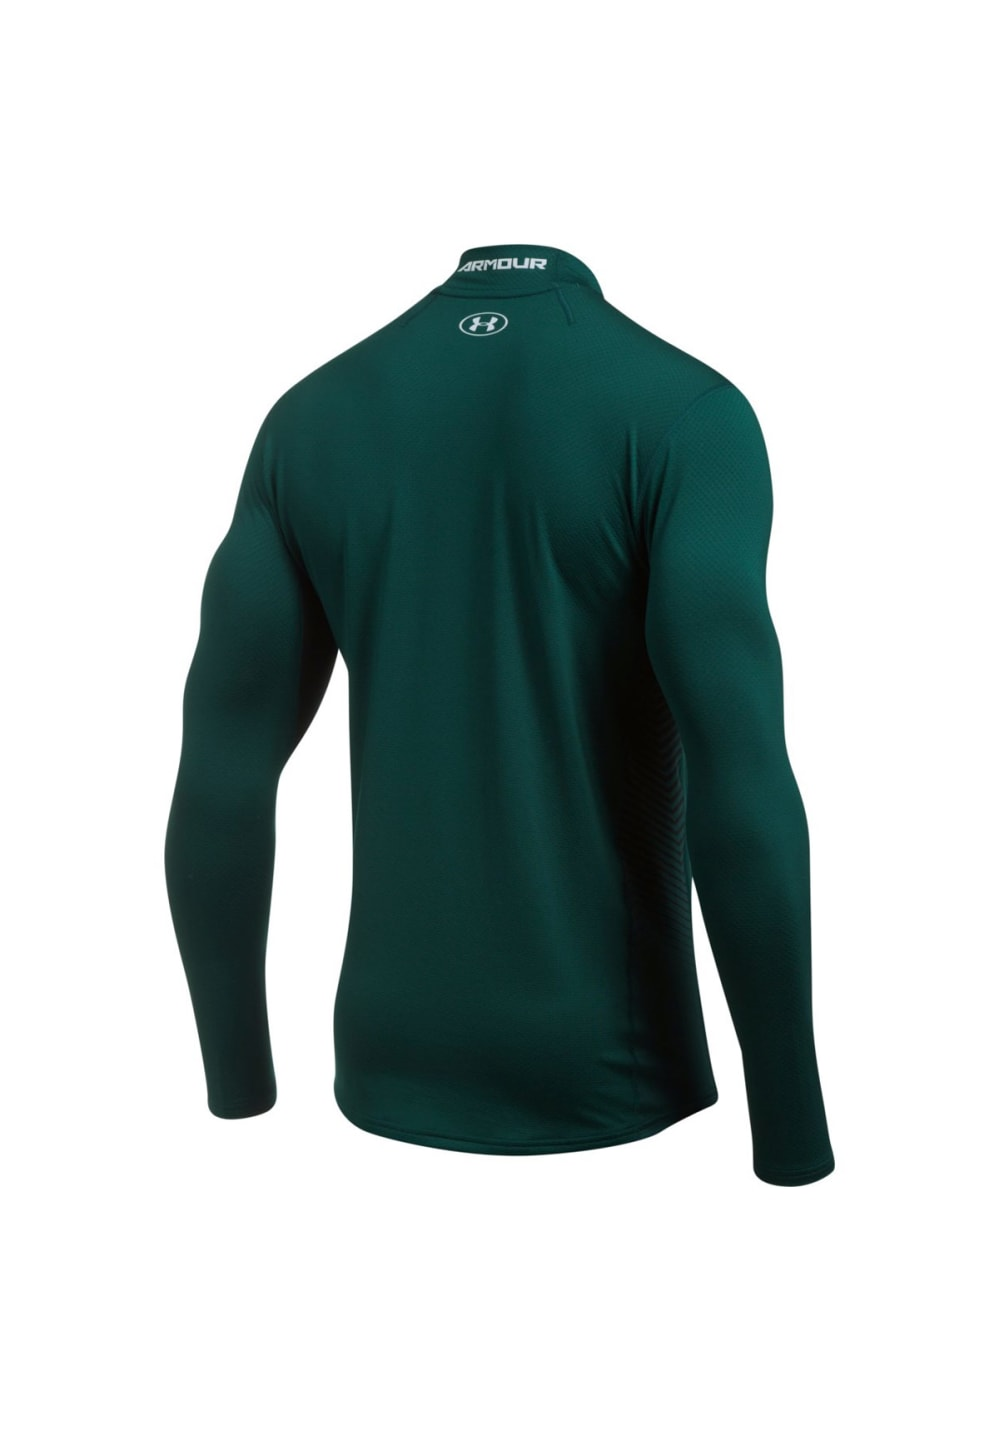 db60d2c37 Under Armour ColdGear Reactor Fitted Long Sleeve - Fitness tops for ...